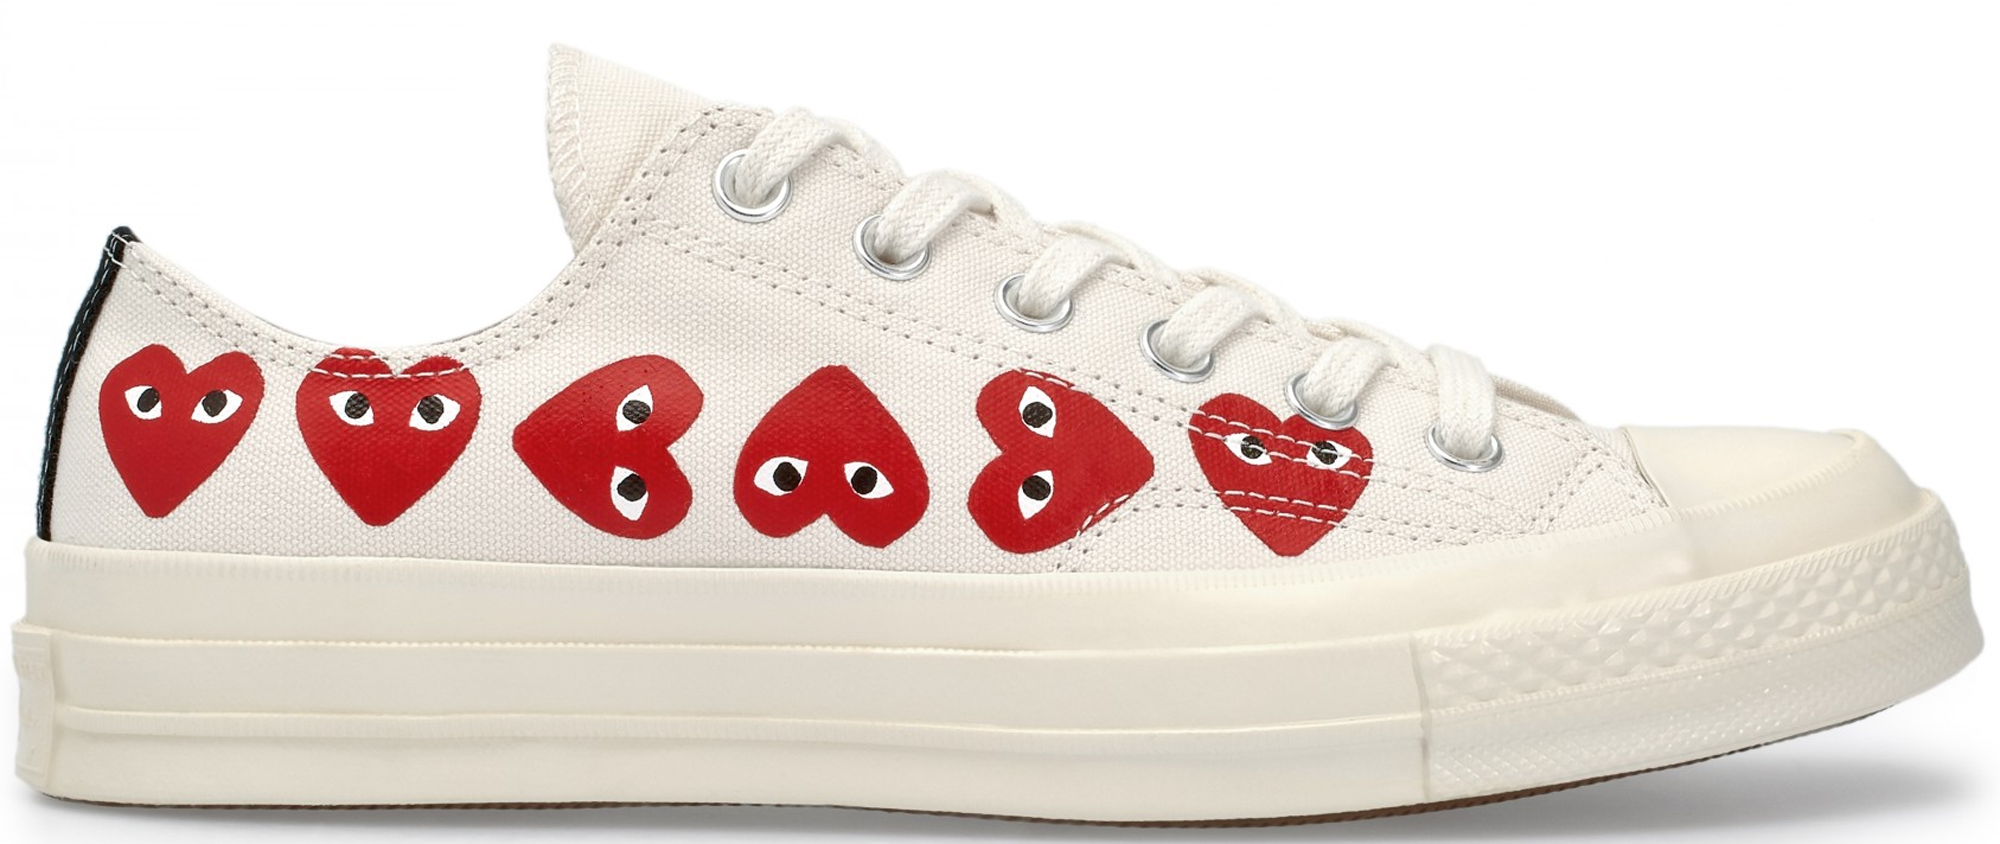 Converse Chuck Taylor All-Star 70s Ox Comme des Garcons Play Multi-Heart White